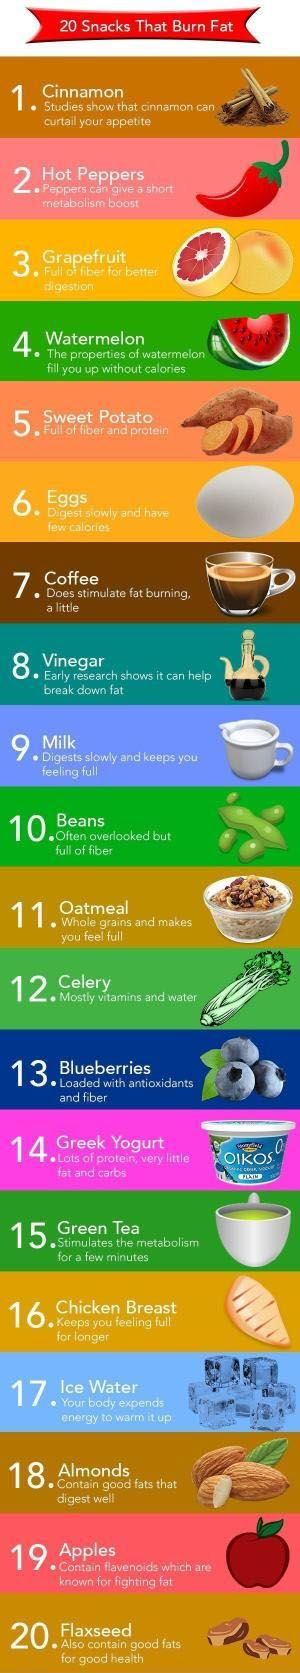 Foods That Get Rid of Belly Fat   Ways To Get Rid of Belly Fat